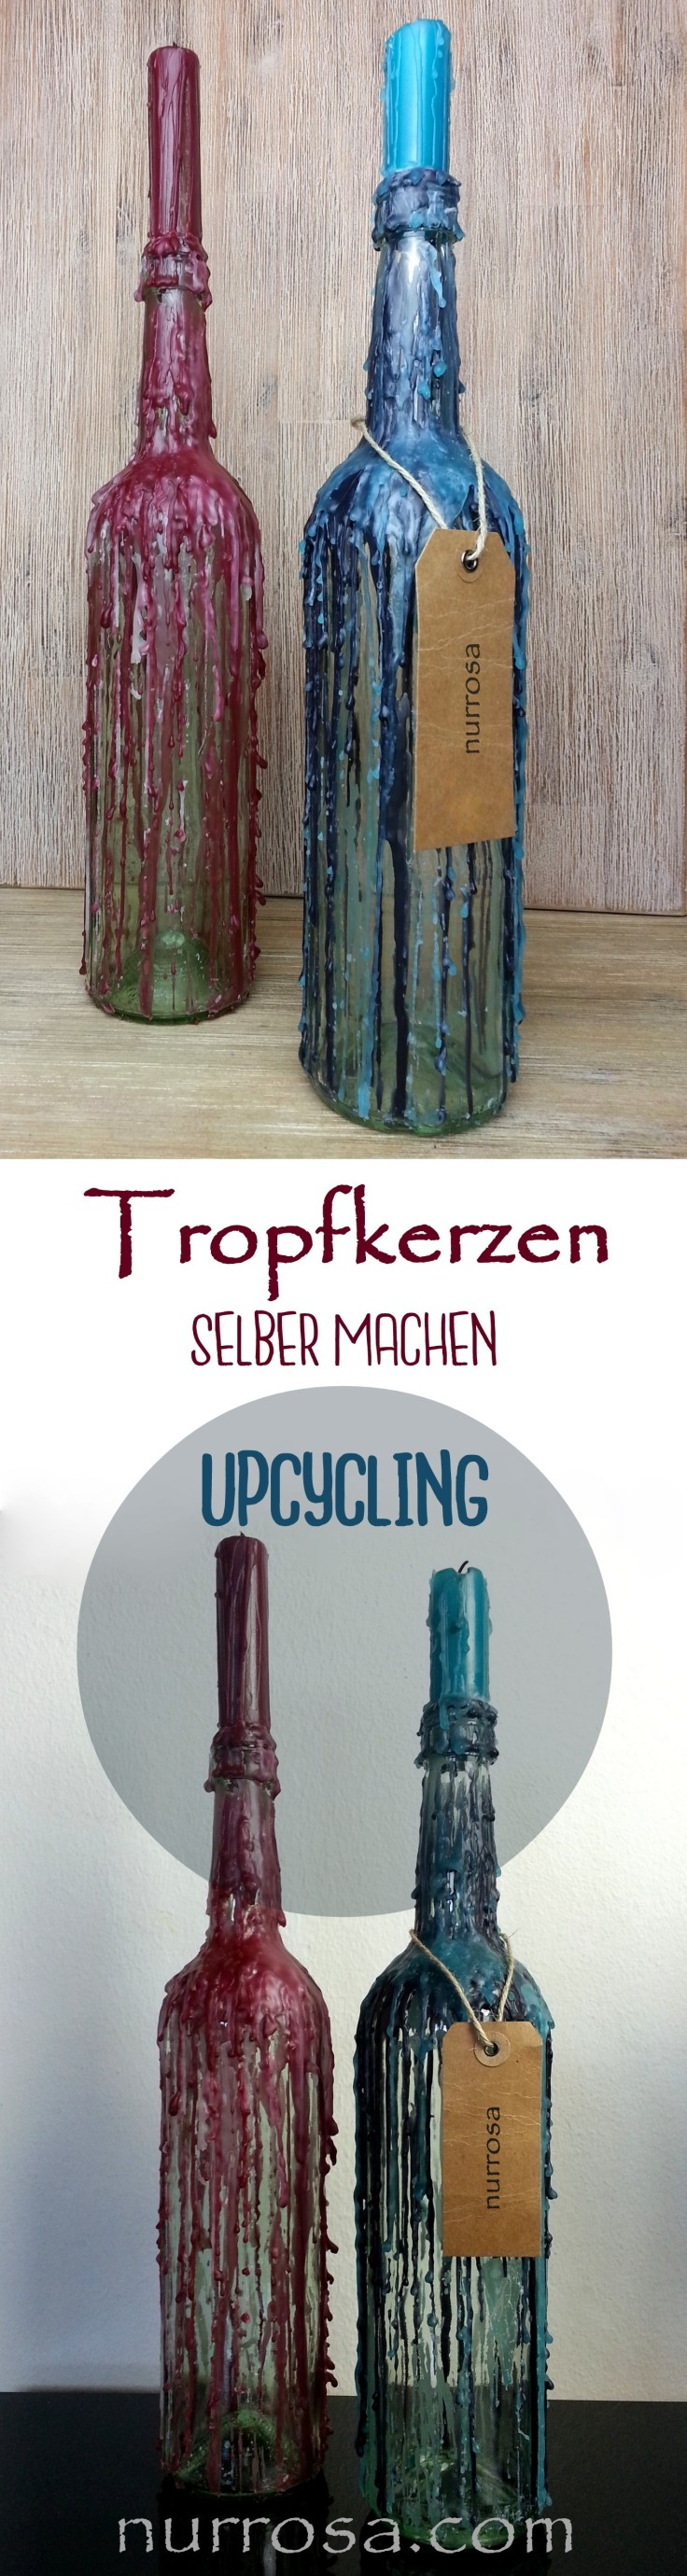 upcycling tropfkerzen selber machen nurrosa. Black Bedroom Furniture Sets. Home Design Ideas